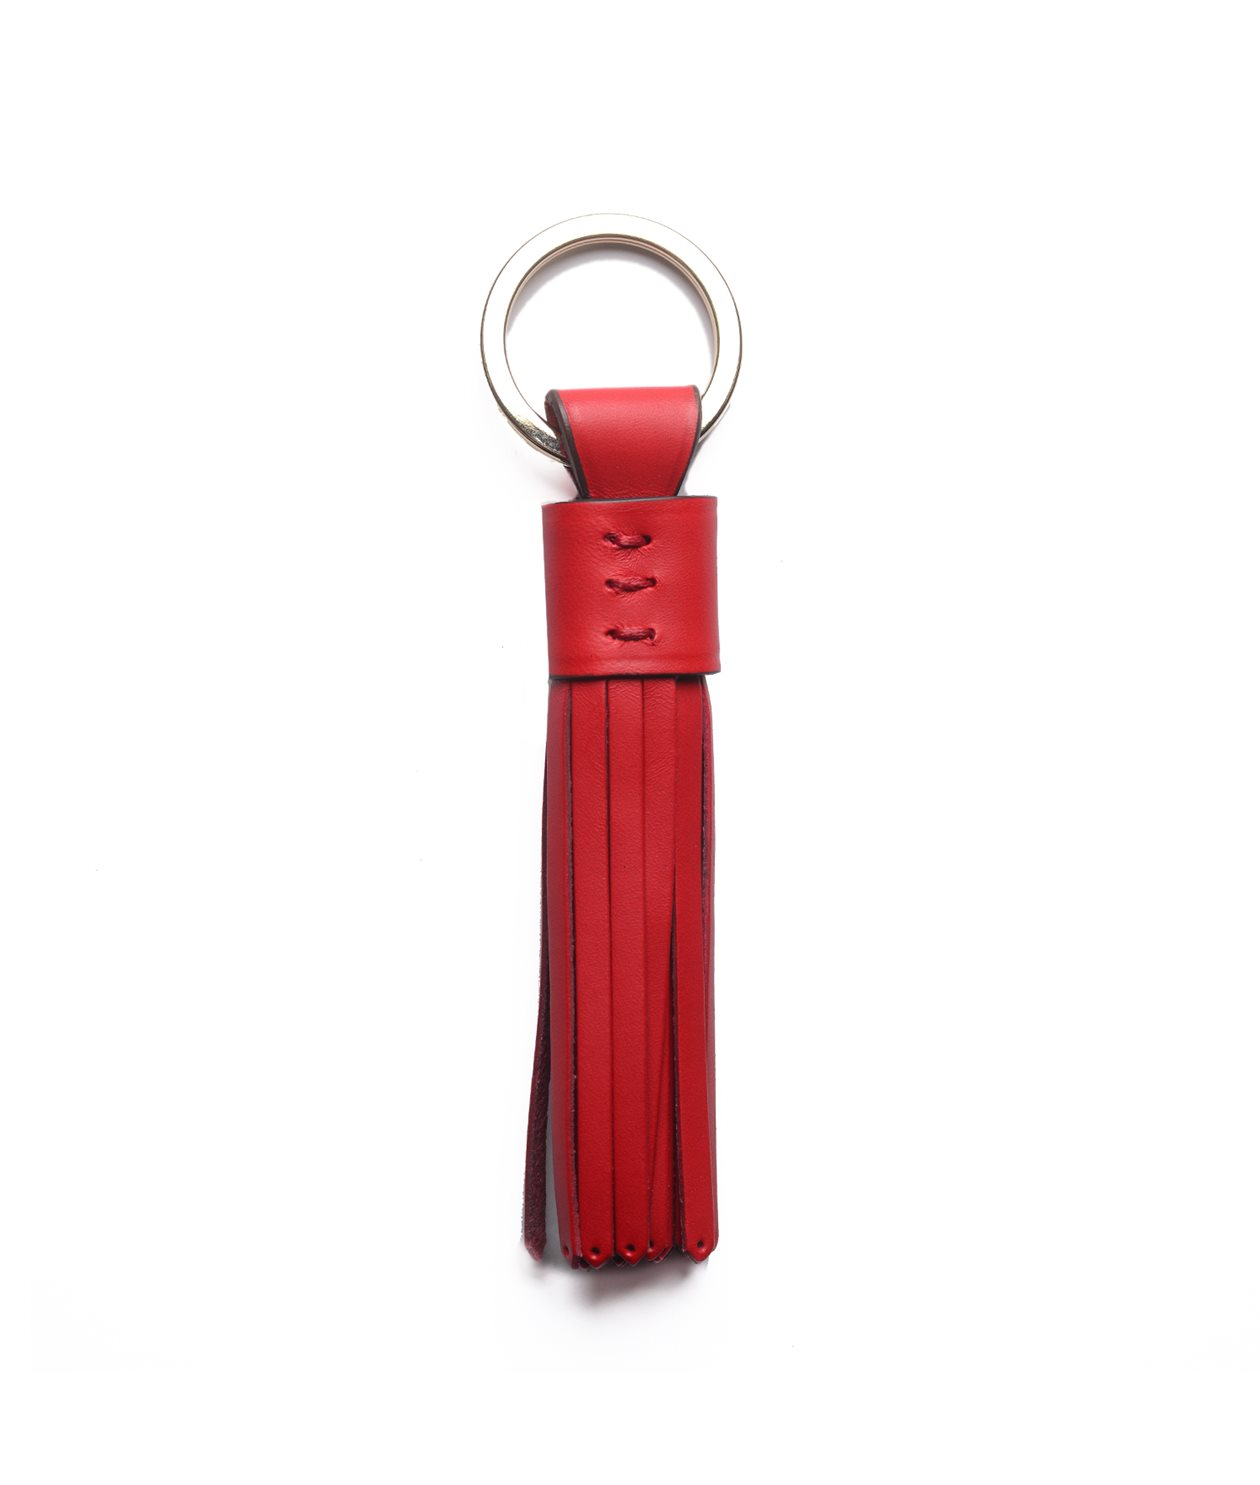 Palmgrens - Nyckelring Tofs Röd - Genuine handcrafted leather since 1896 e046e9970a1bb